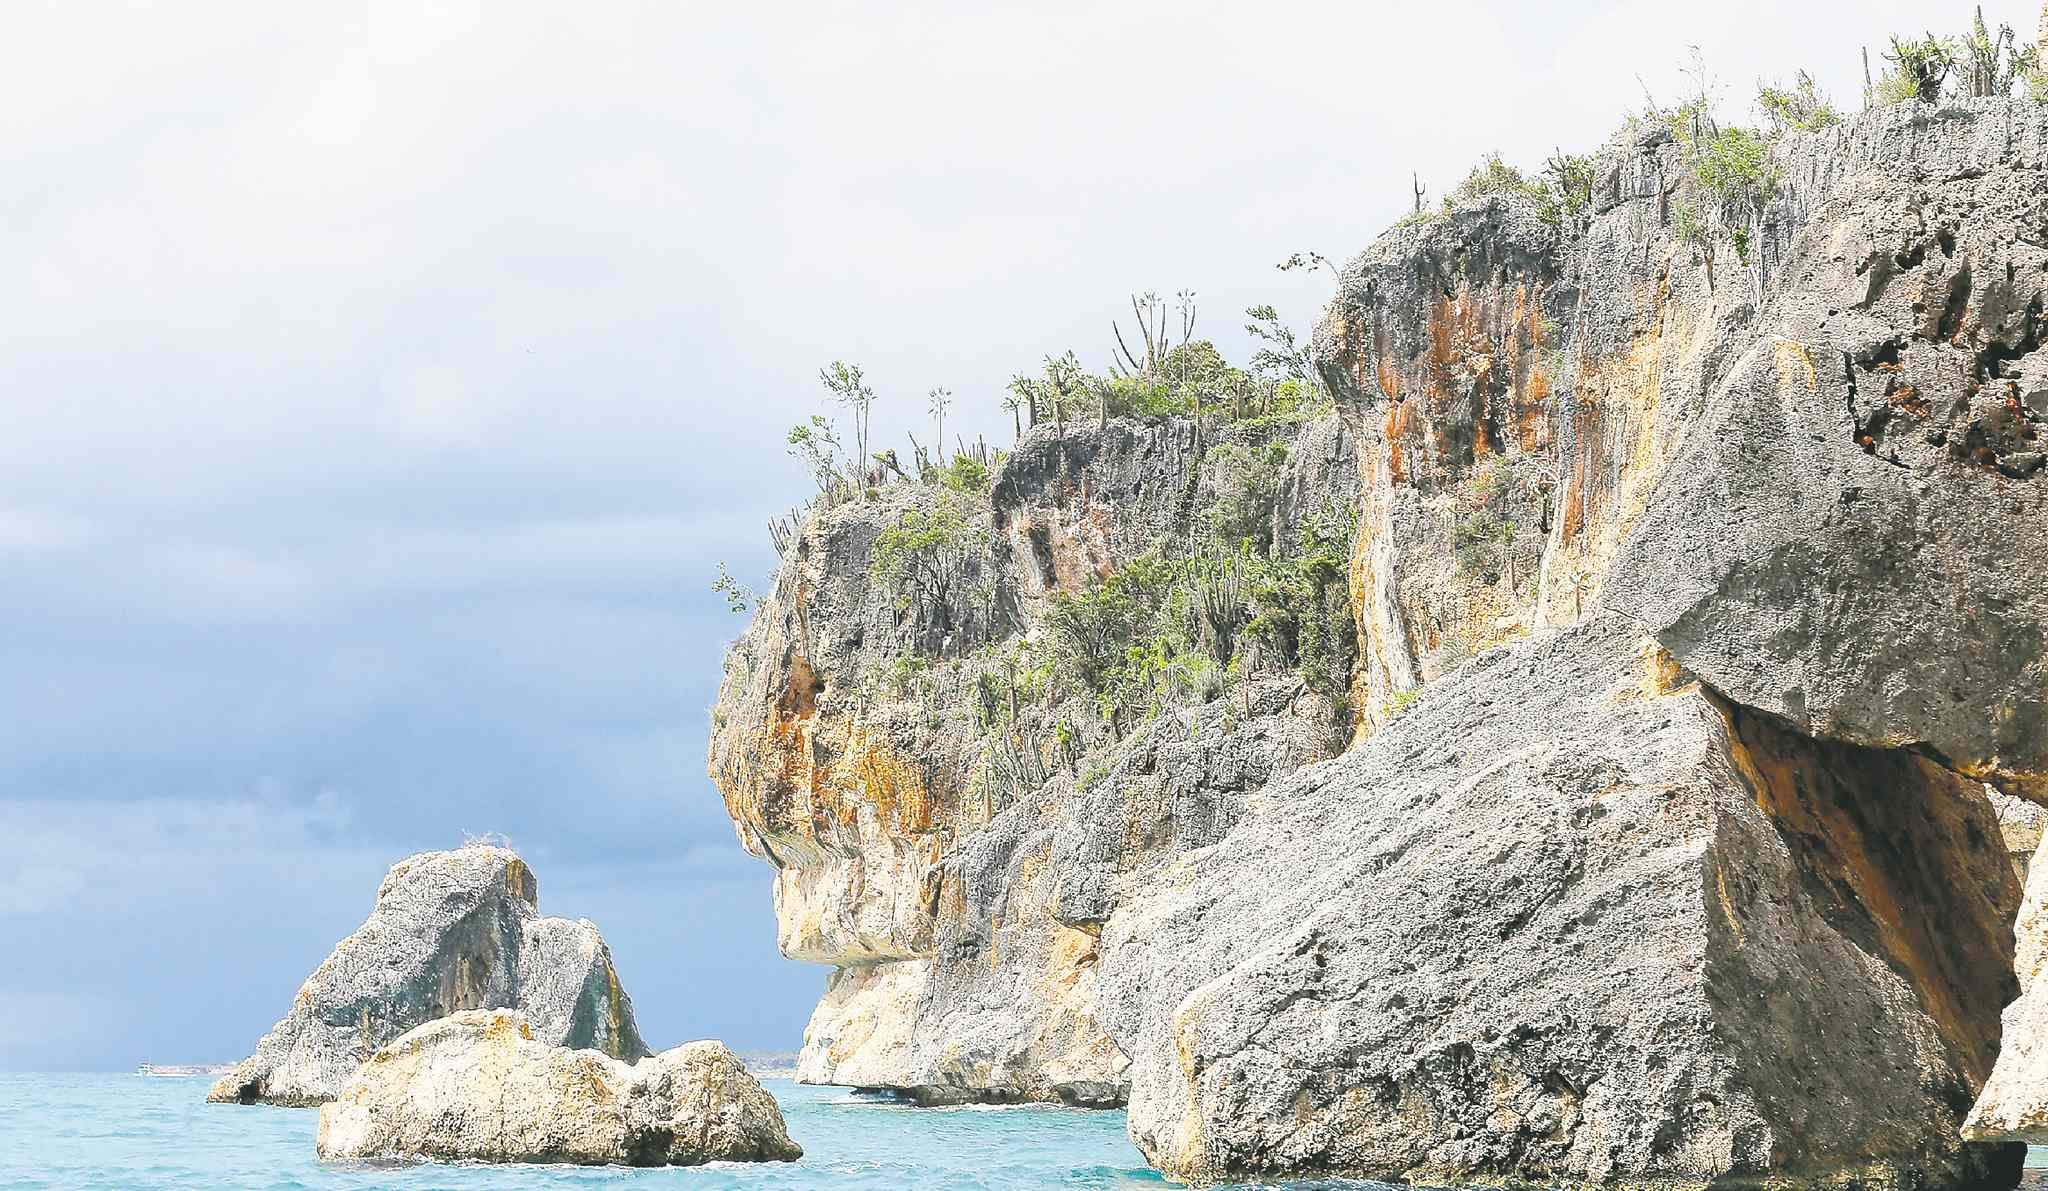 The boat ride to the beaches at Eagle Bay in Jaragua National Park straddles a cliffed coastline and threads through promintory rocks dislodged from the past earthquakes.